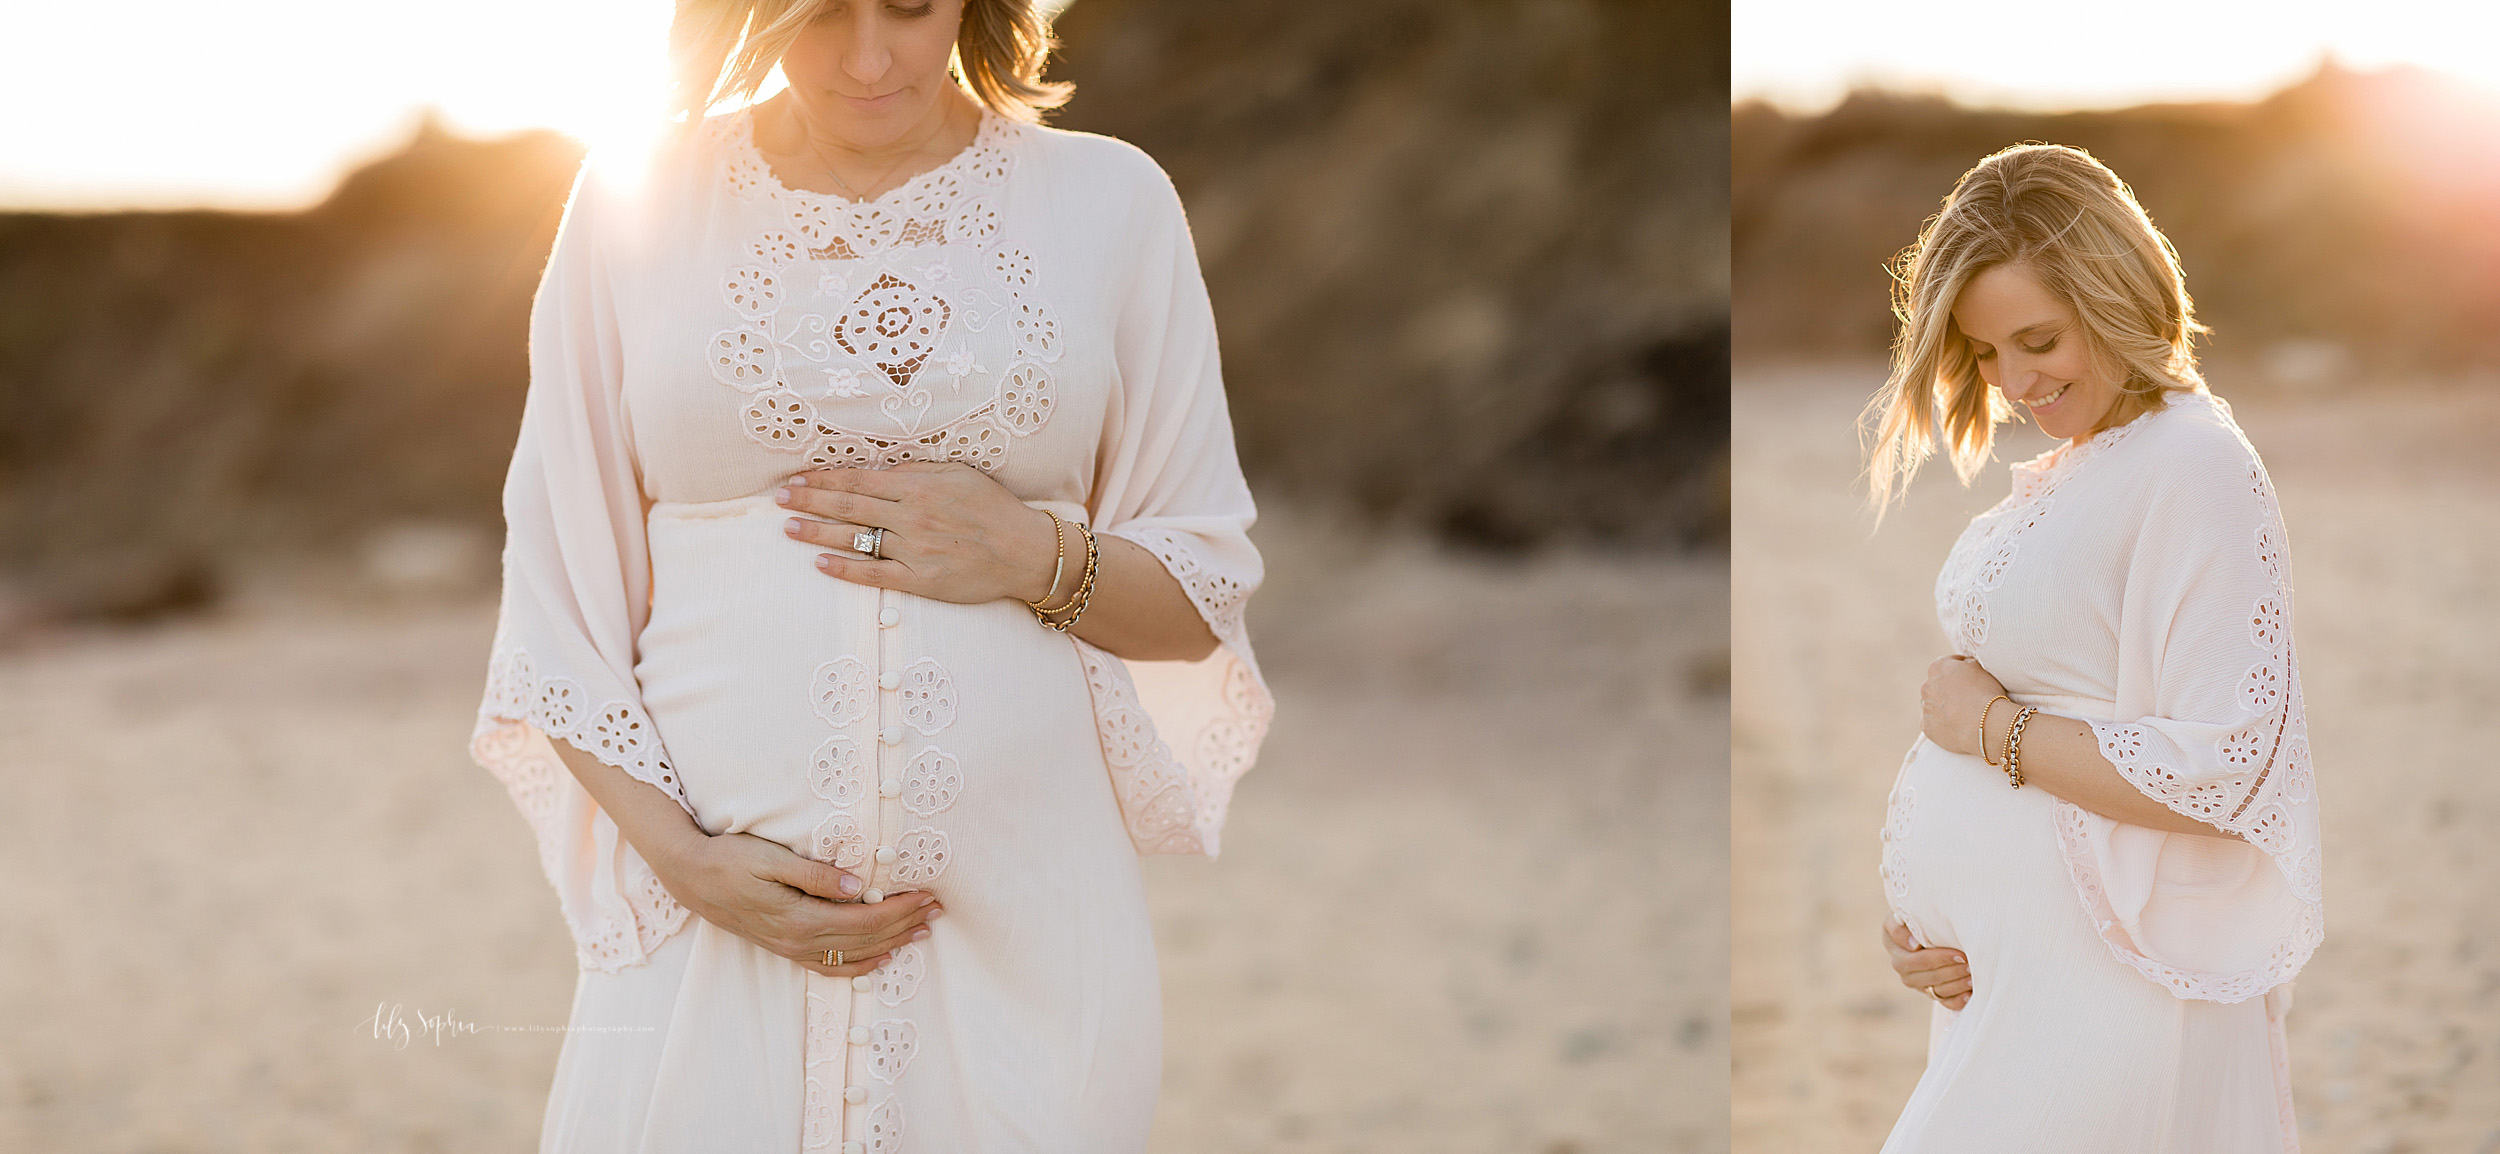 atlanta-brookhaven-decatur-candler-park-sandy-springs-buckhead-virginia-highlands-west-end-decatur-lily-sophia-photography-expecting-baby-girl-nyc-maternity-montauk-hamptons-beach-pregnancy-photo-session_1638.jpg